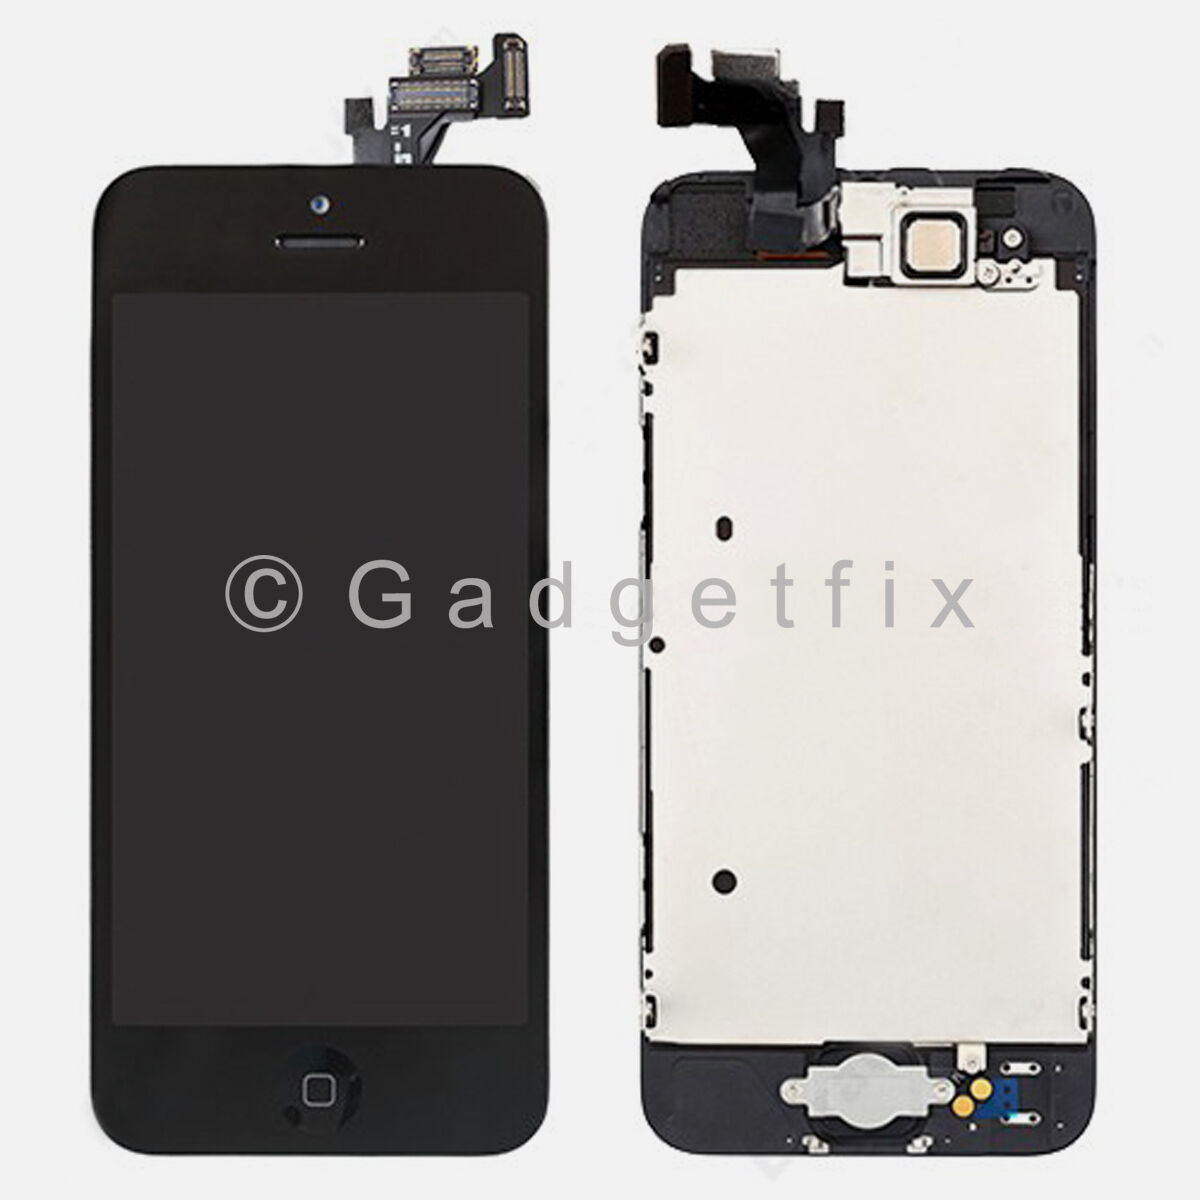 LCD Screen Touch Screen Digitizer Replacement for Iphone 5 5C 5S 6 6S 7 8 Plus